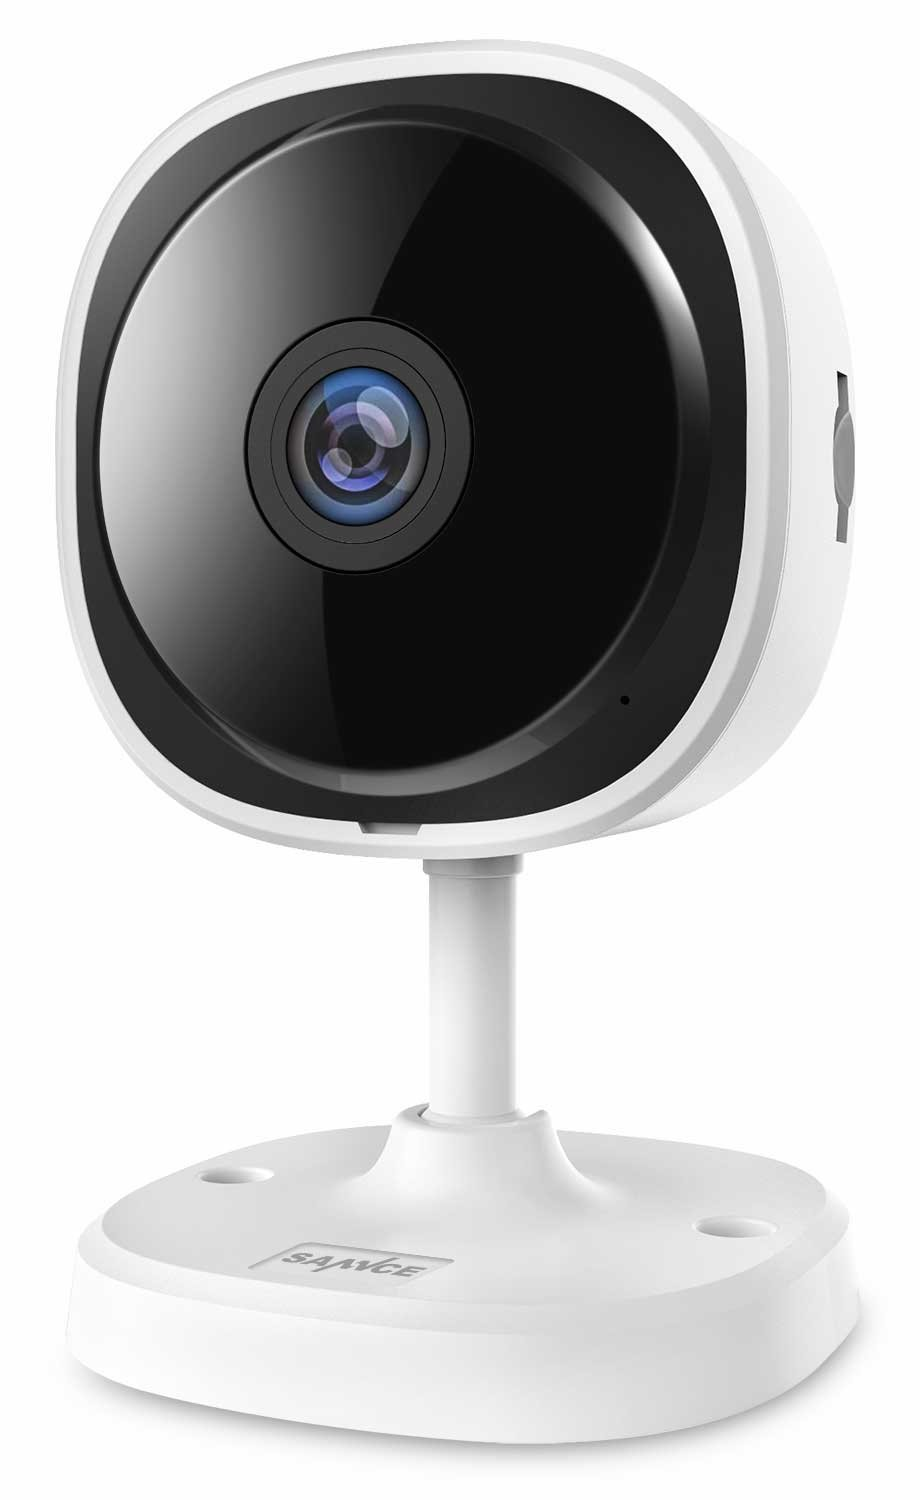 SANNCE 1080P HD WIFI Security Camera, 180-degree Wireless IP Camera with fisheye Full Angle, Cloud Service Available, Two-way Audio, Motion Detection by SANNCE